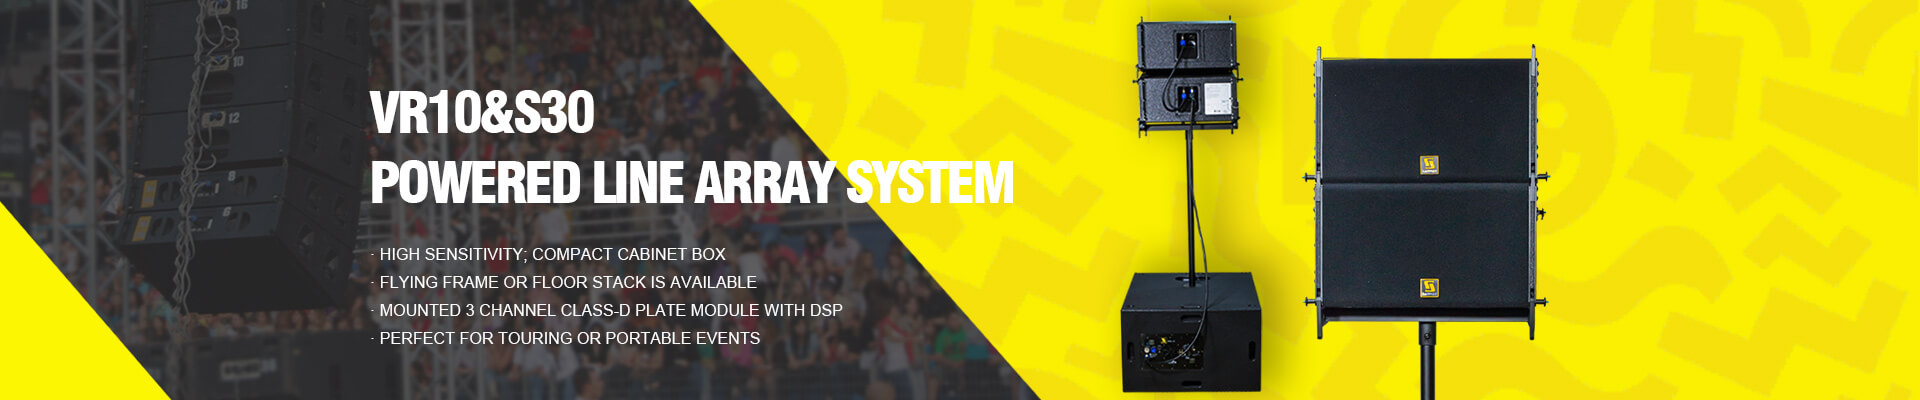 powered line array speaker